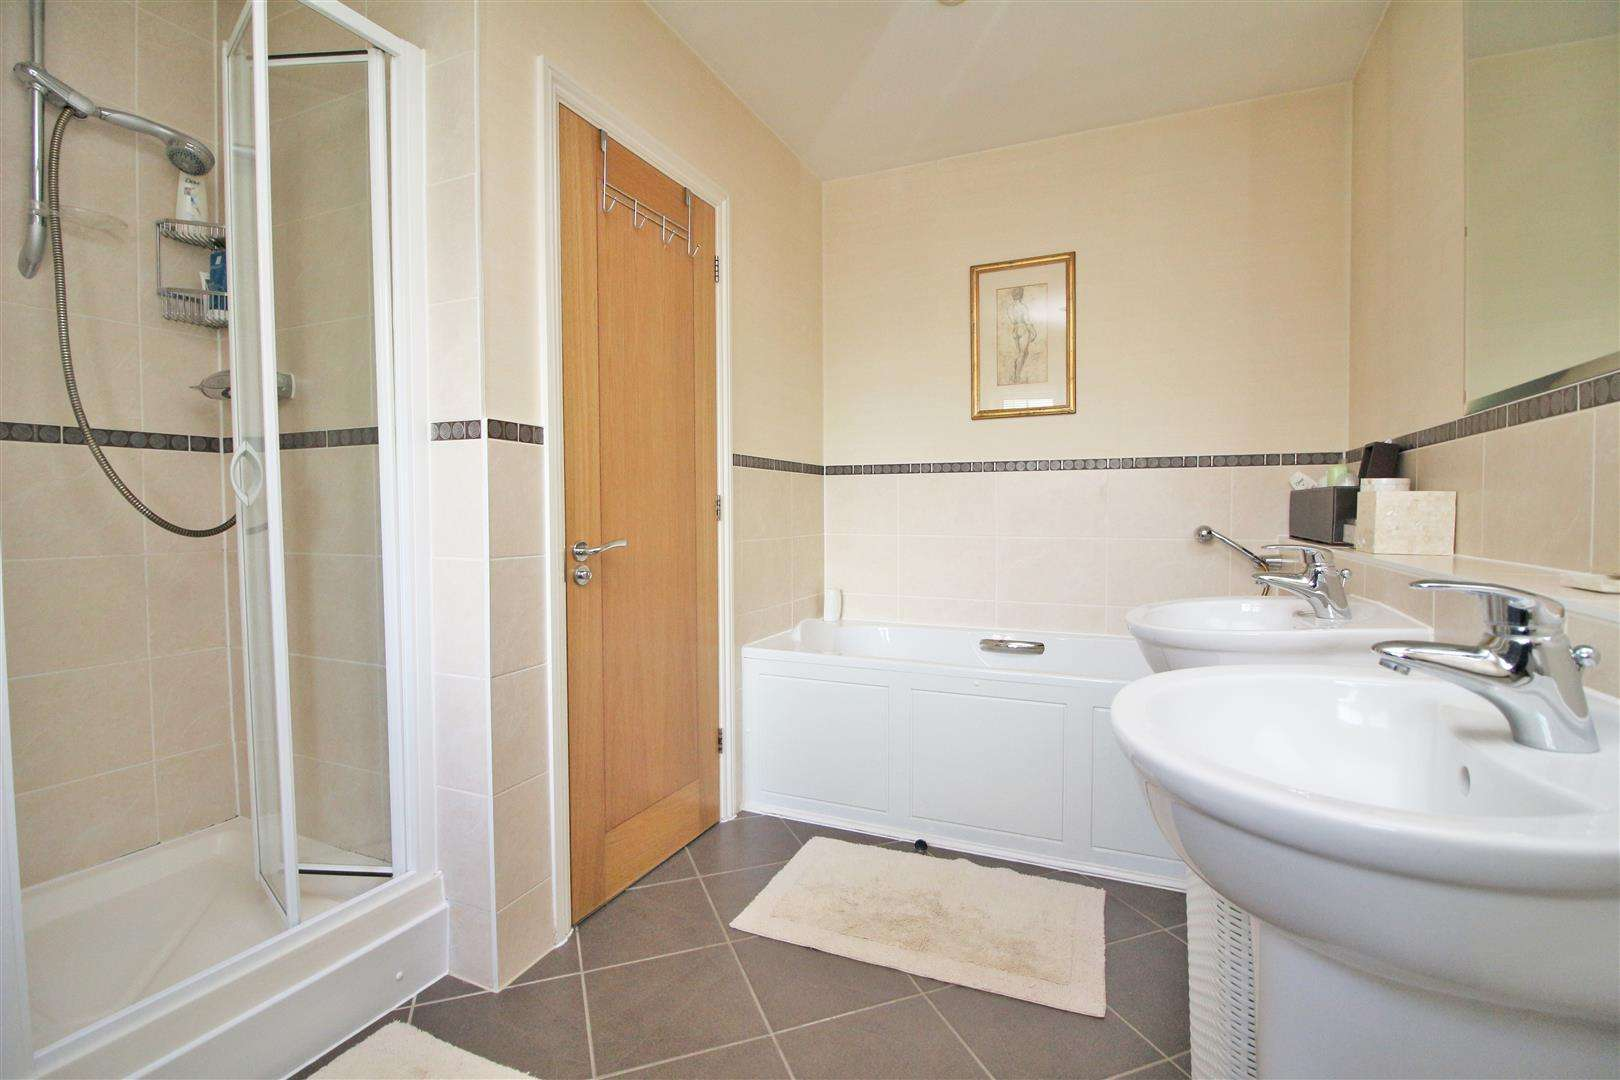 4 bed to rent in Bushey Heath - (Property Image 10)